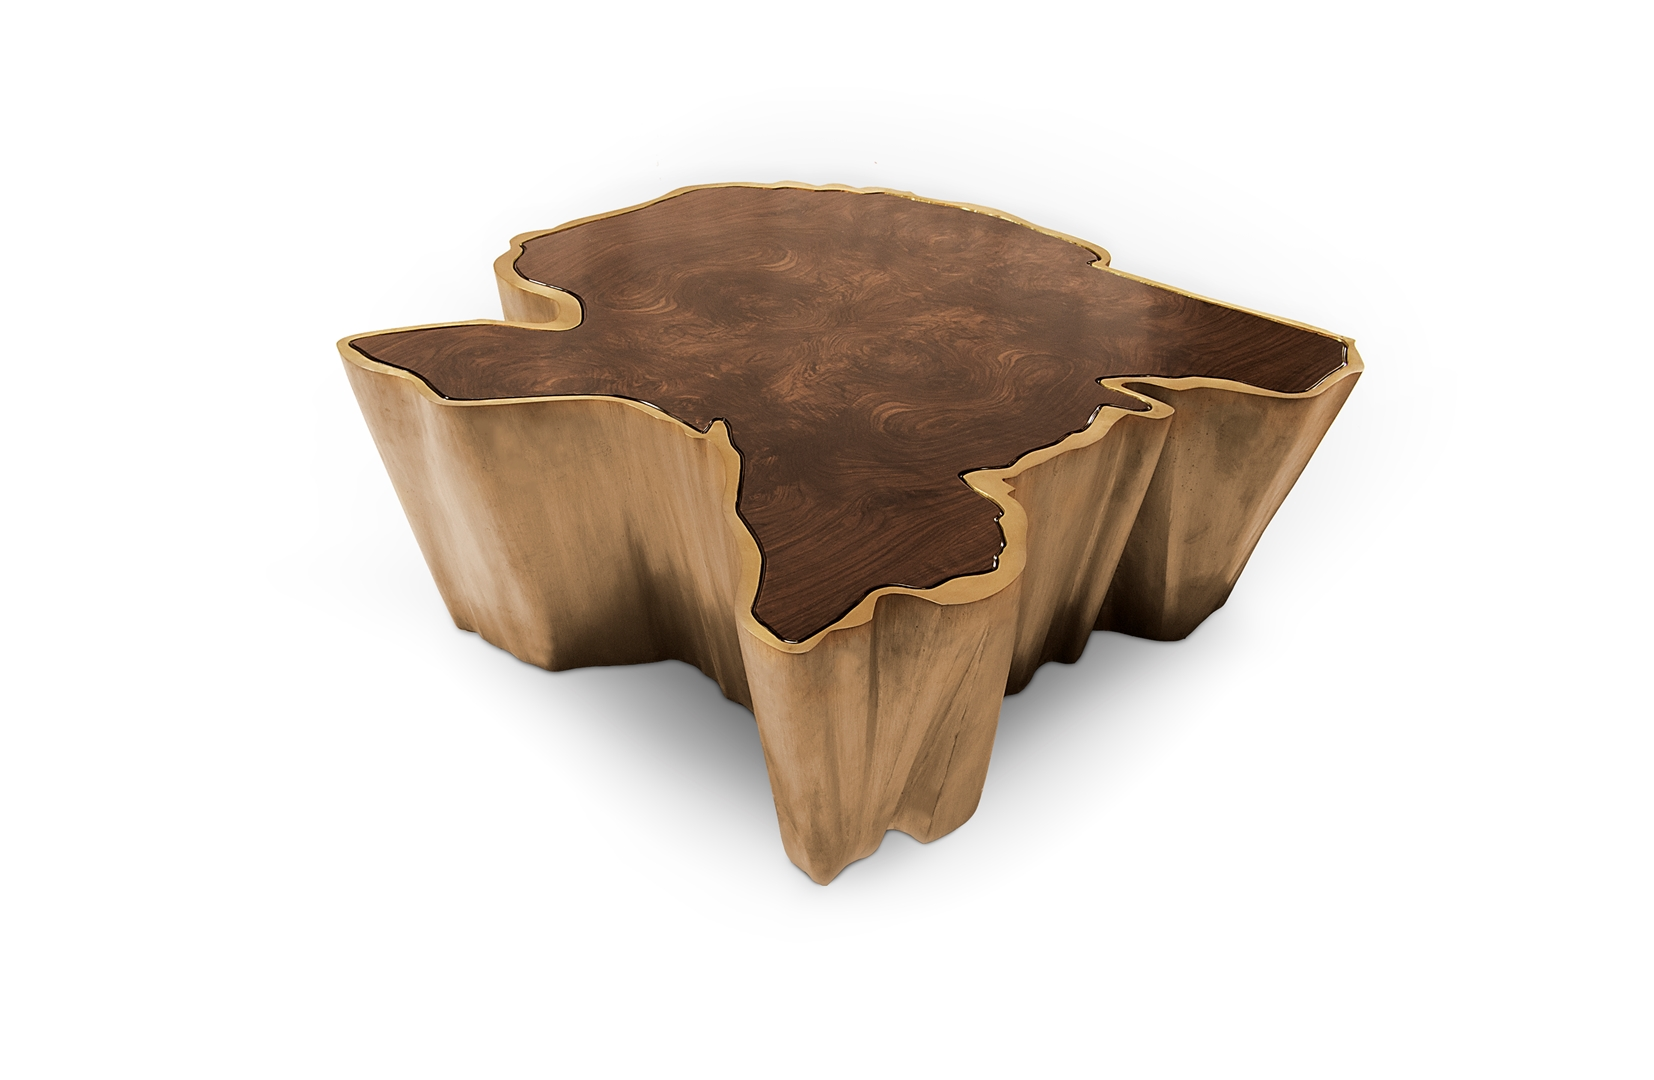 sequoia-center-table-1-HR (Copy)